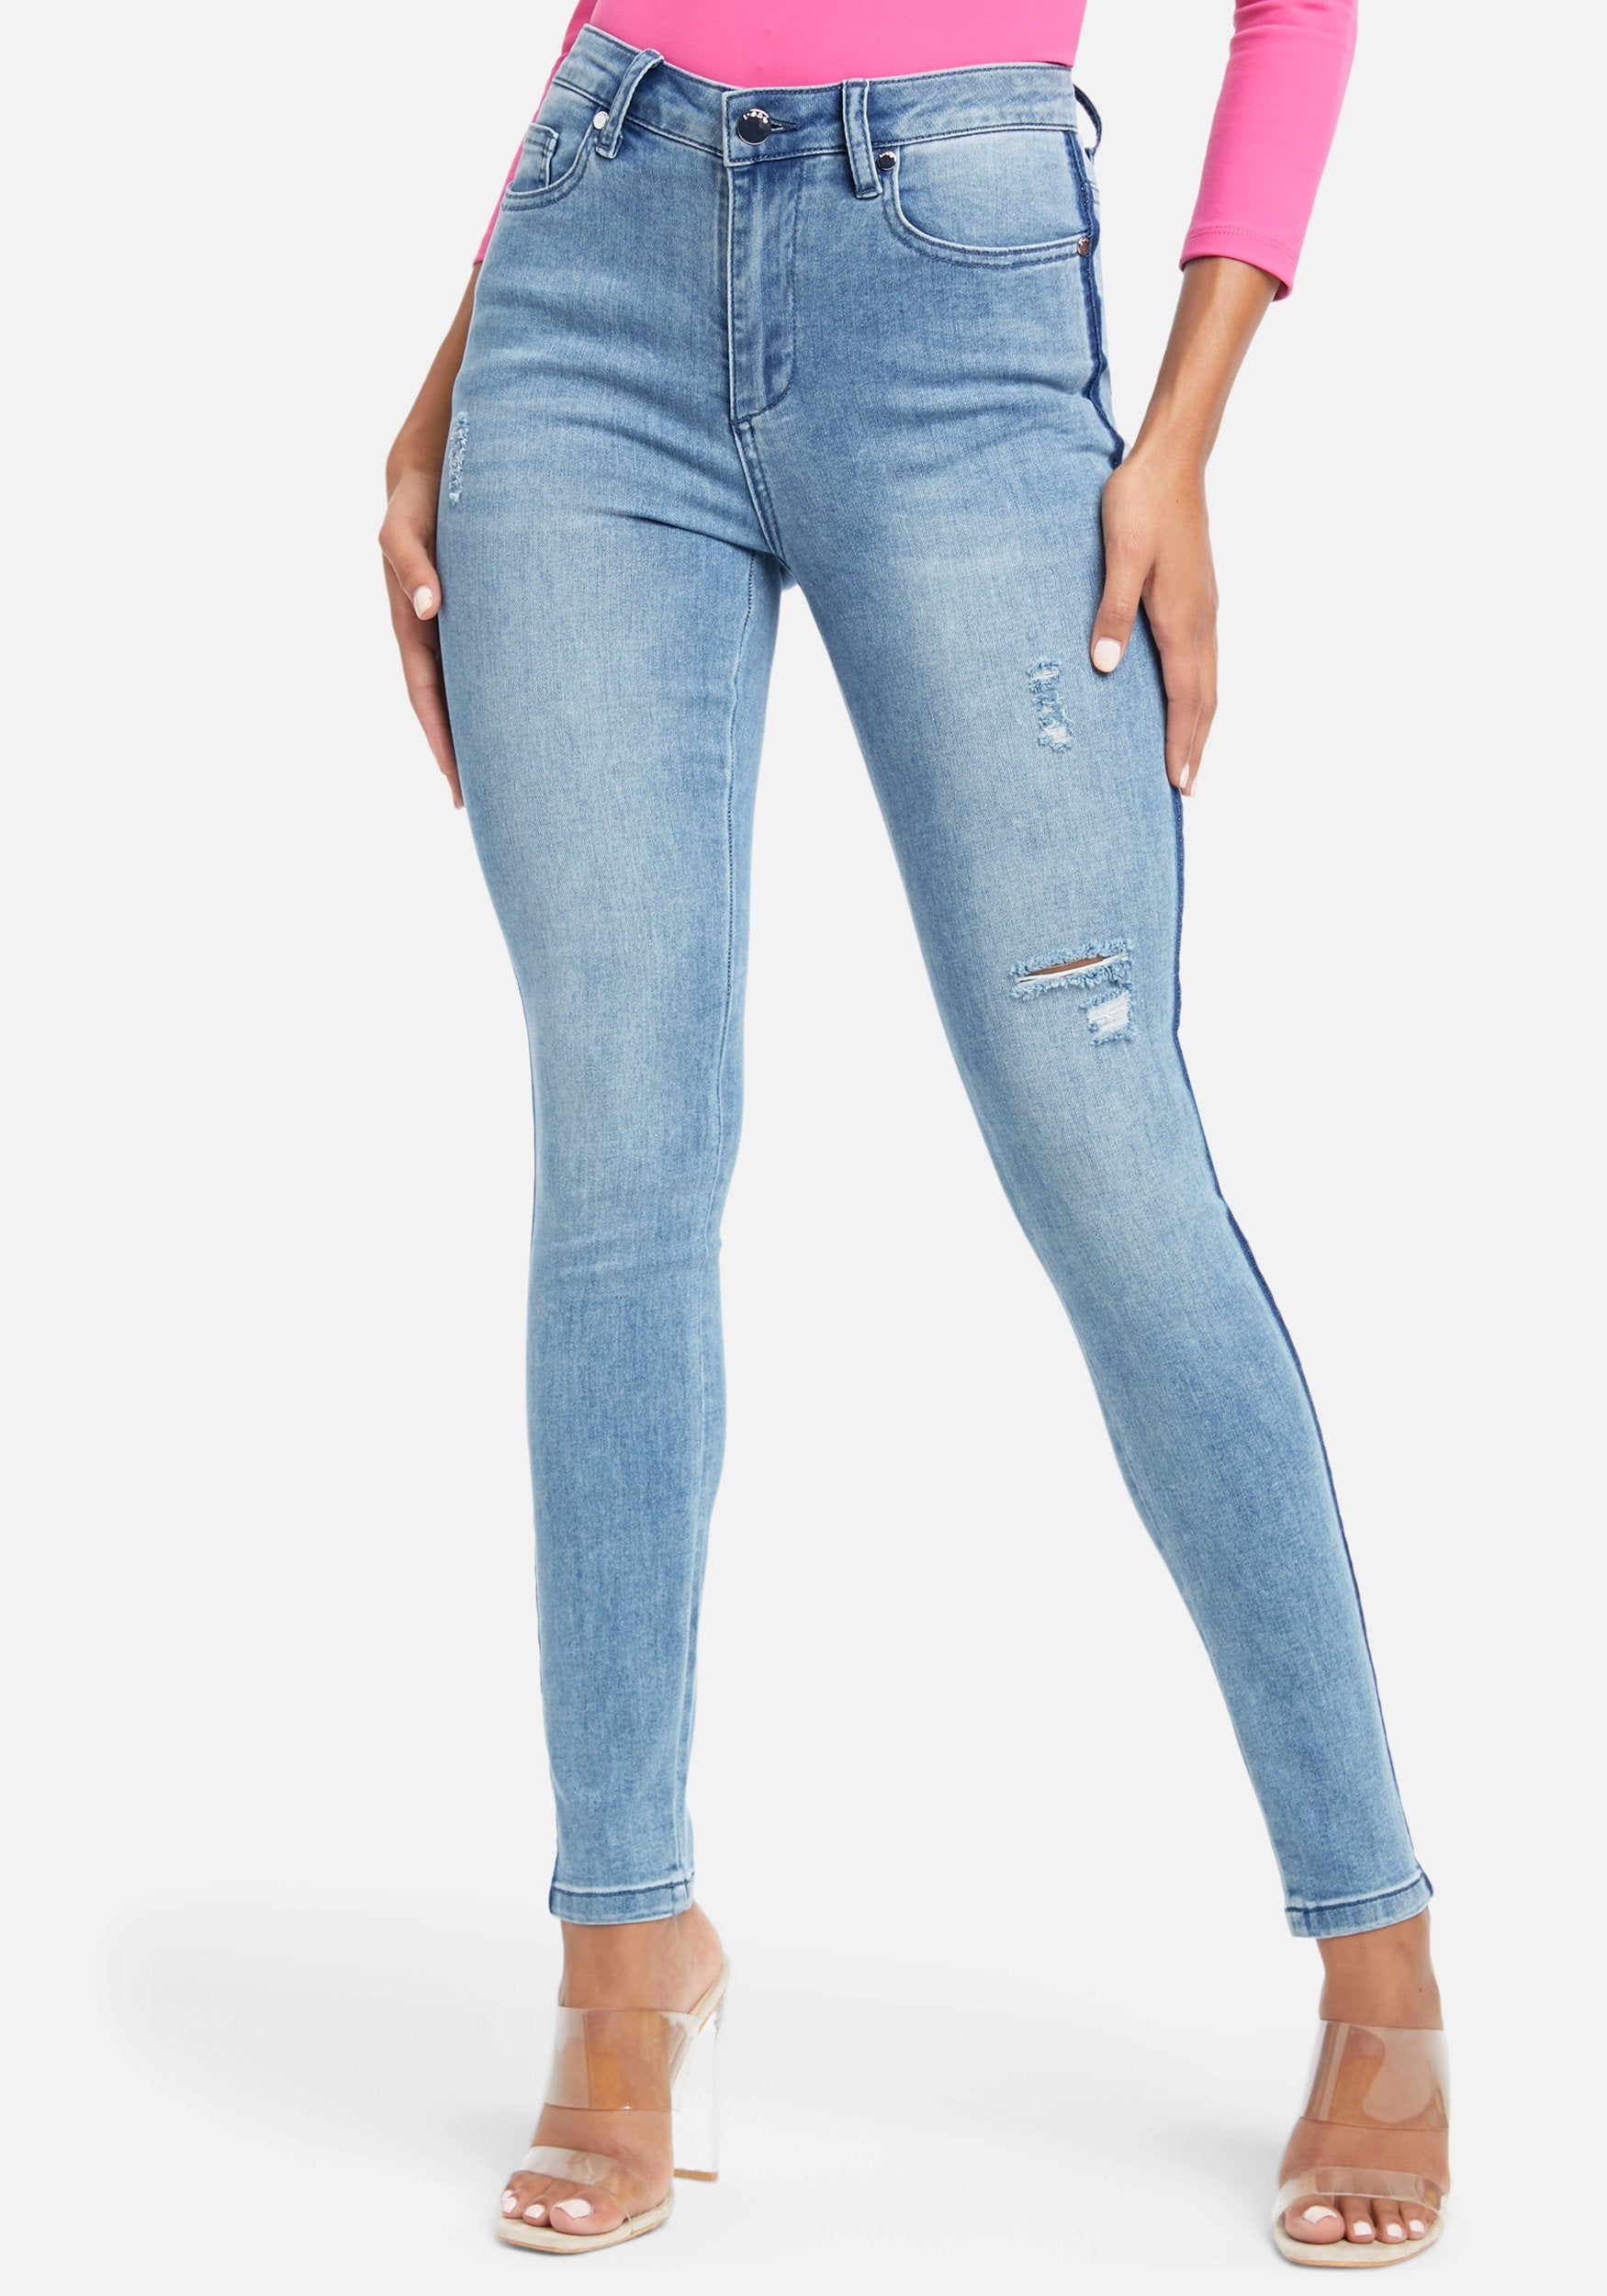 Bebe Women's Whisker Wash Skinny Jeans, Size 25 in Light Blue Wash Cotton/Spandex